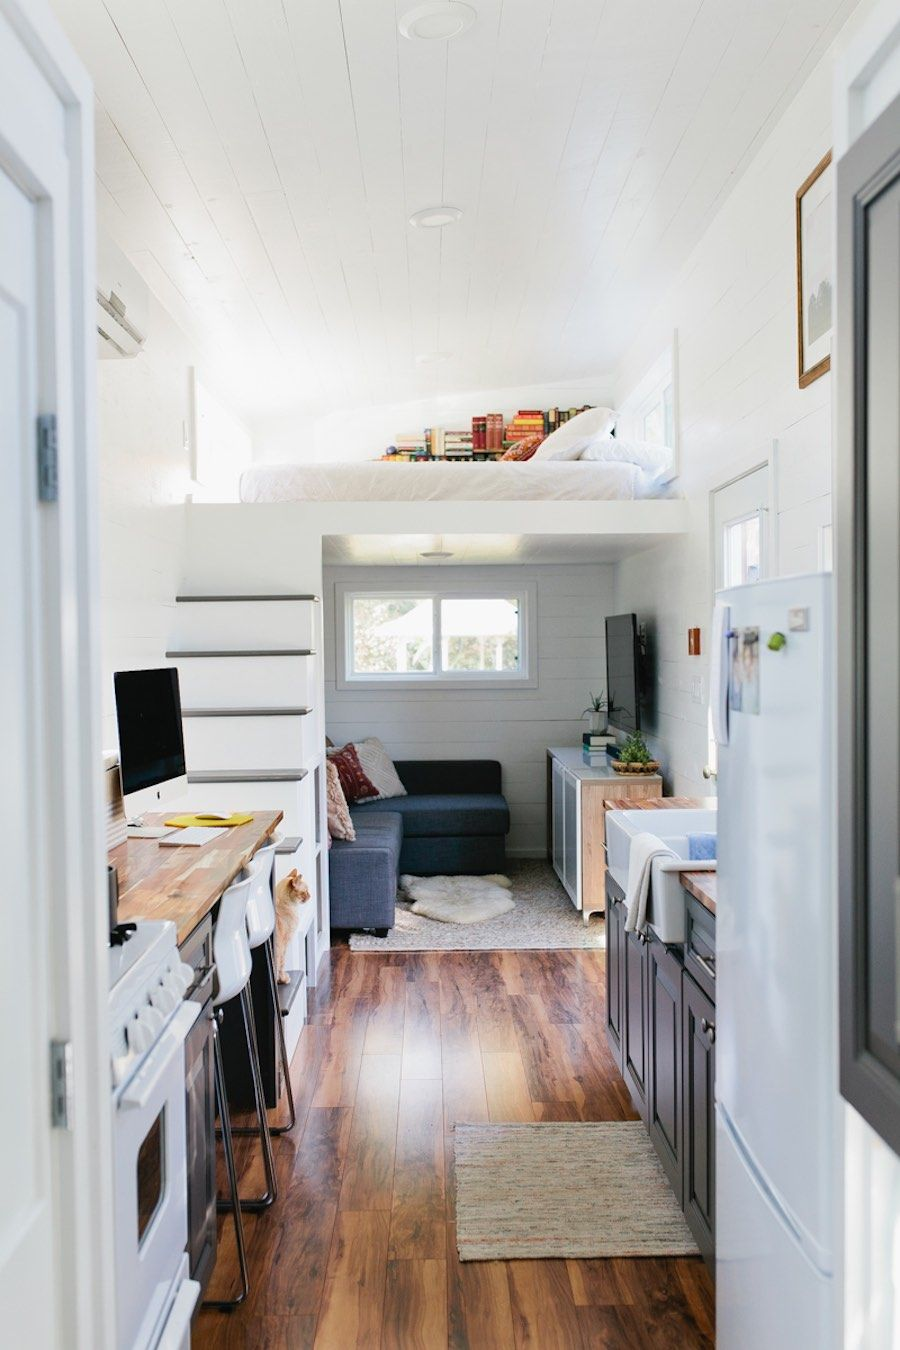 tiny houses we loved this week from   craftsman stunner to wheelchair friendly solution curbed also house design ideas inspire you home decor rh pinterest